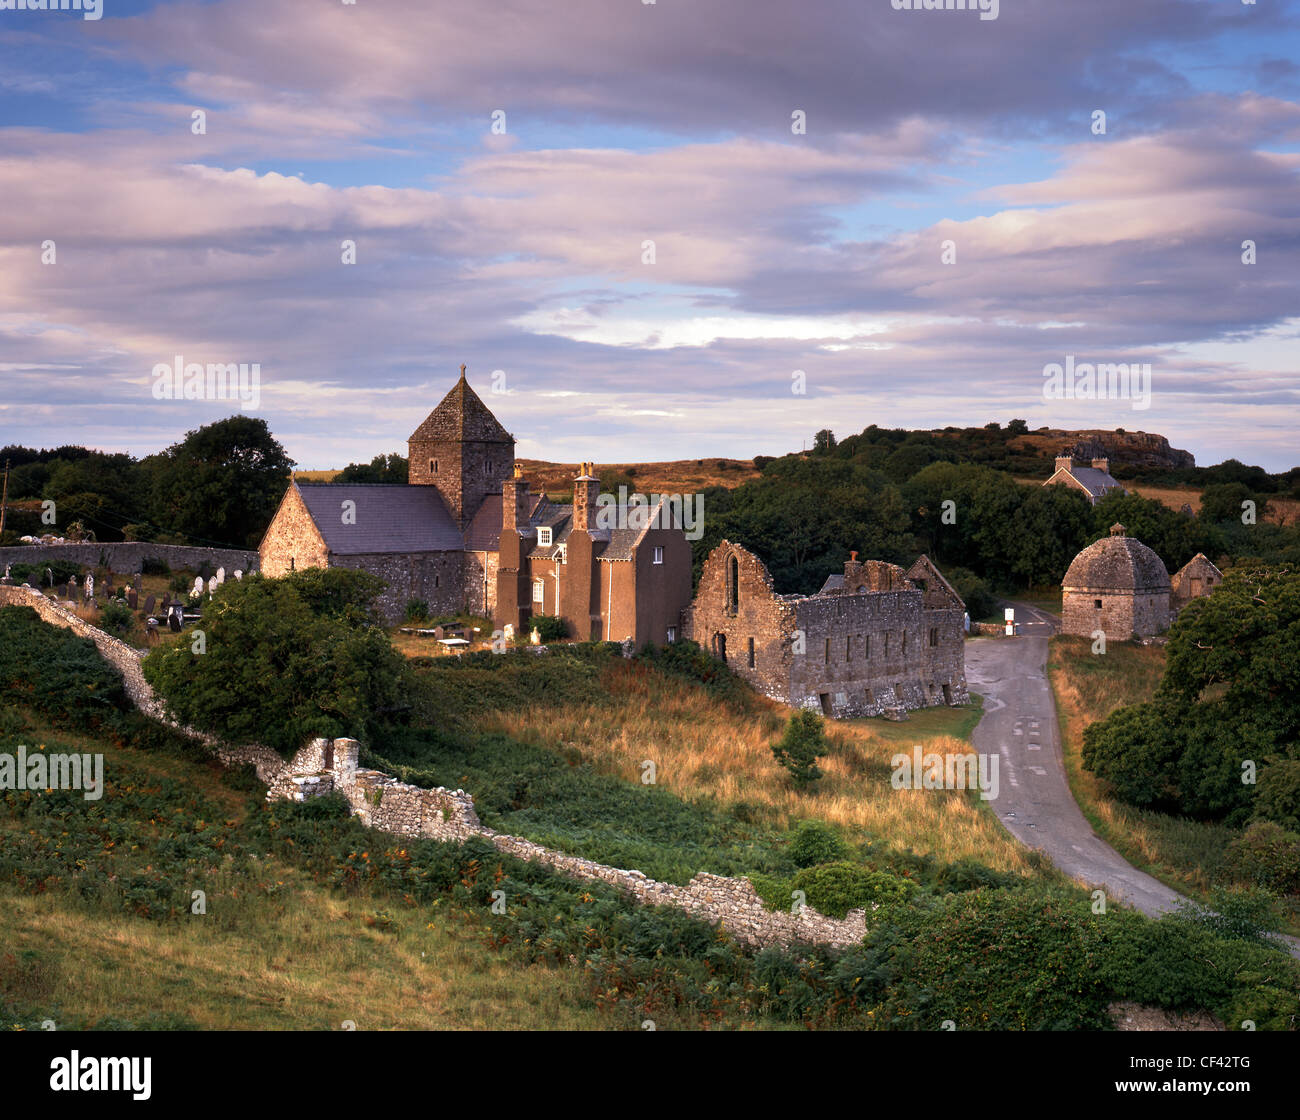 Fading sunlight illuminates the remains on Penmon Priory and Priory church which serves as the parish church today. - Stock Image